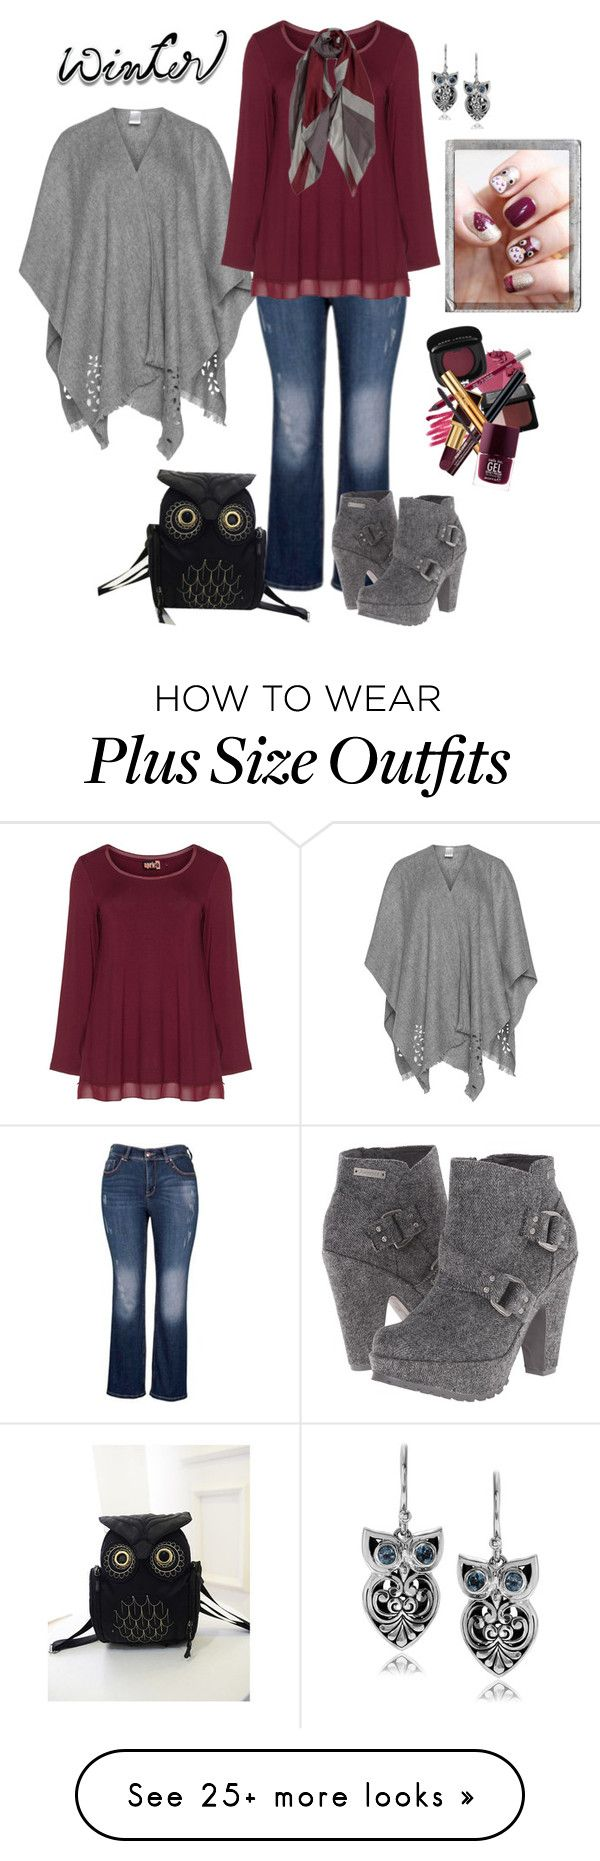 """Plus Size - The Owls Have It"" by elise1114 on Polyvore featuring moda, Fraas, aprico, Blowfish, Journee Collection, Polaroid e plus size clothing"